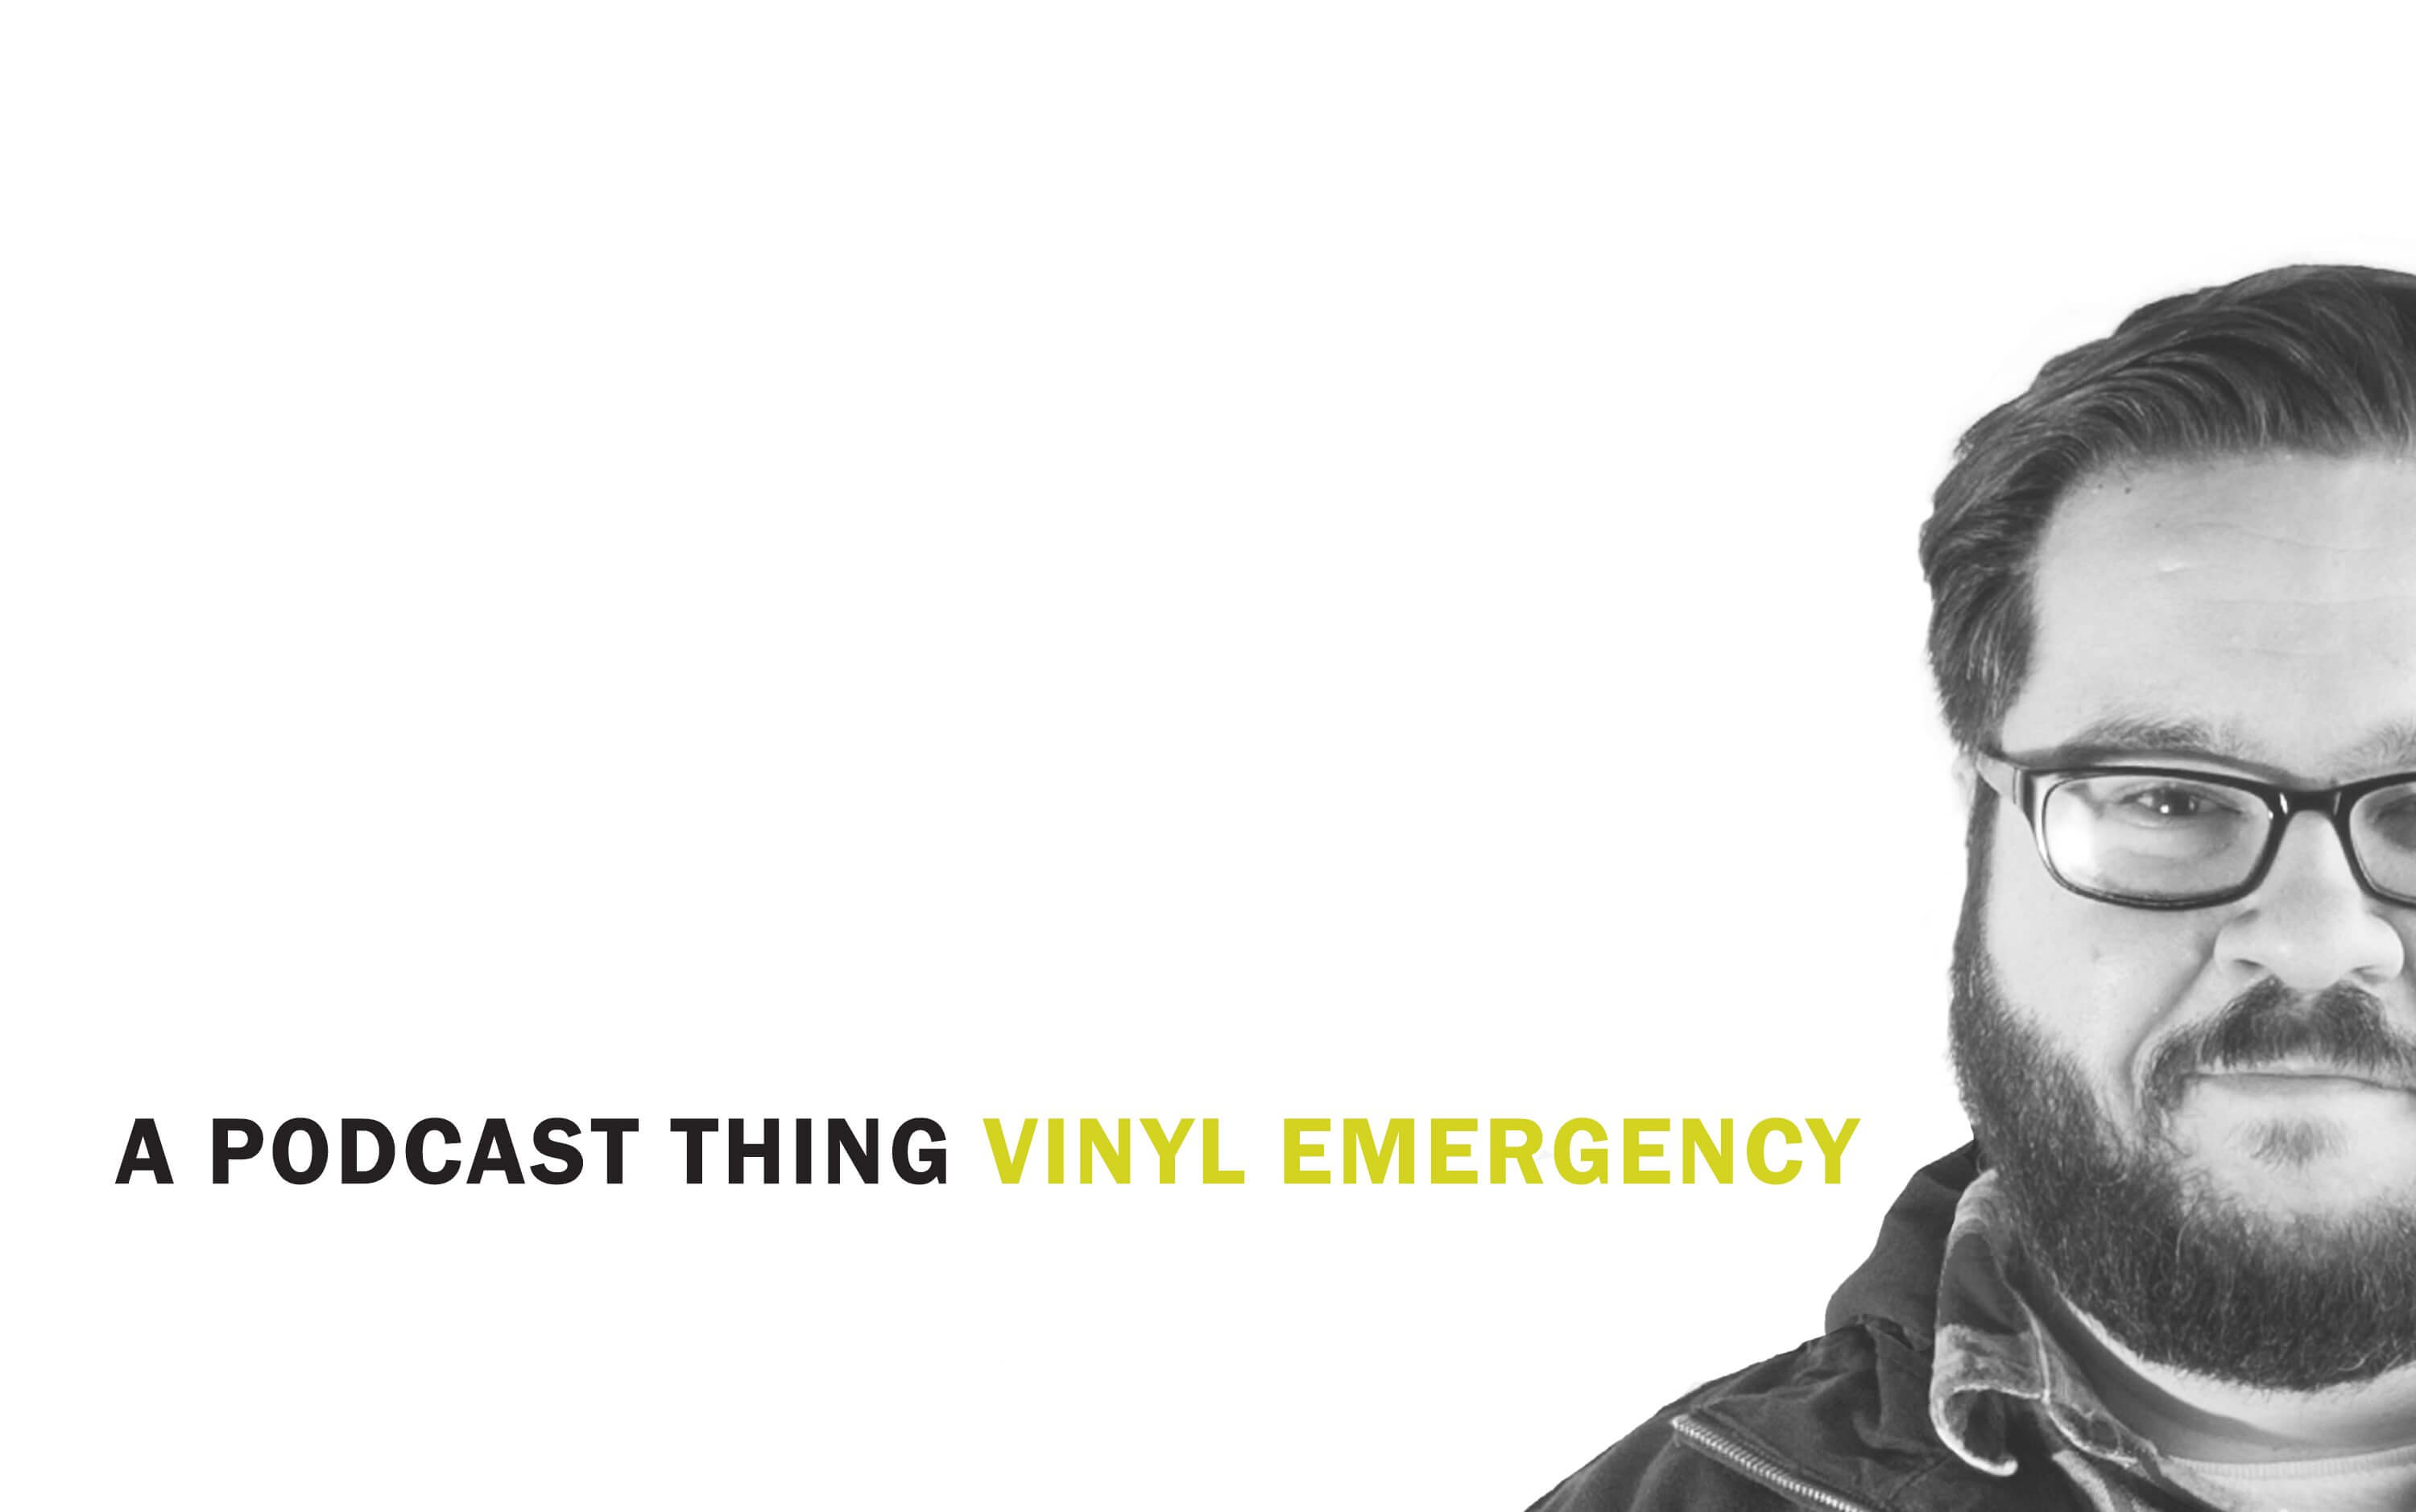 vinyl-emergency-garon